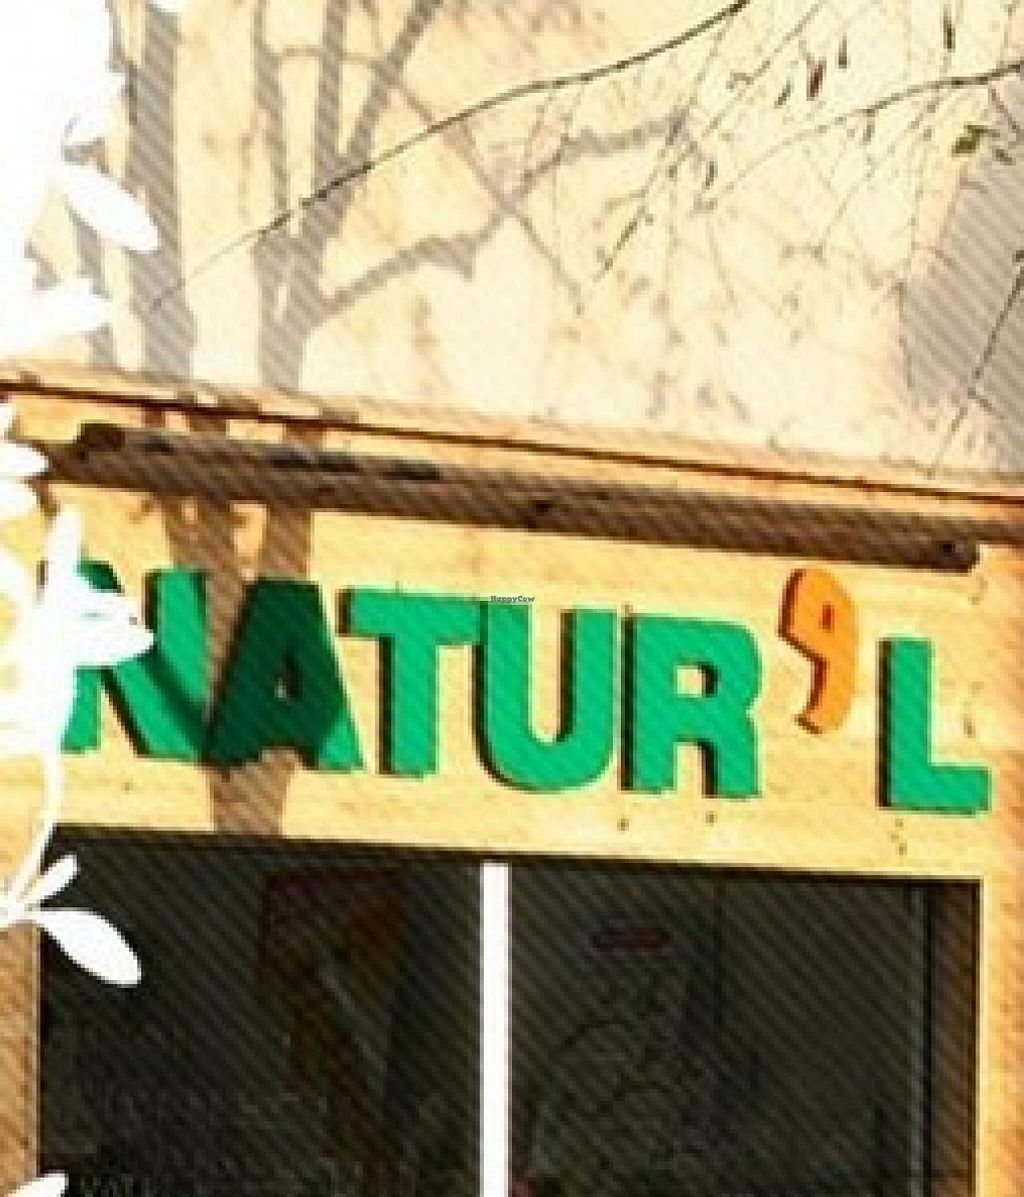 """Photo of Bio Natur'l  by <a href=""""/members/profile/community"""">community</a> <br/>Bio Natur'l <br/> January 11, 2015  - <a href='/contact/abuse/image/54631/90109'>Report</a>"""